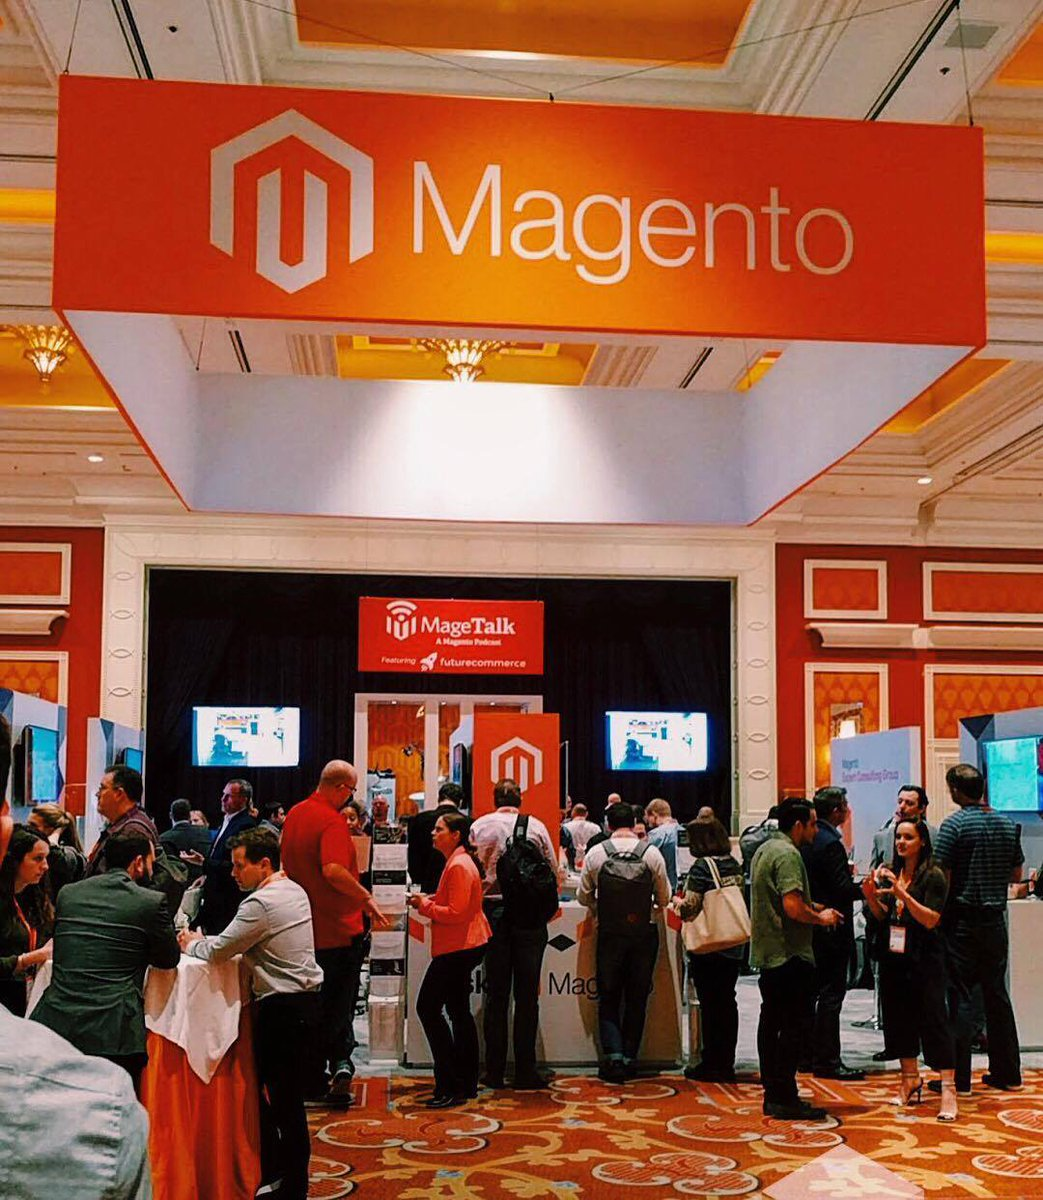 NorthernComm: We had an amazing time at #MagentoImagine, can't wait until next year! @magento https://t.co/vPx6GGrQa8